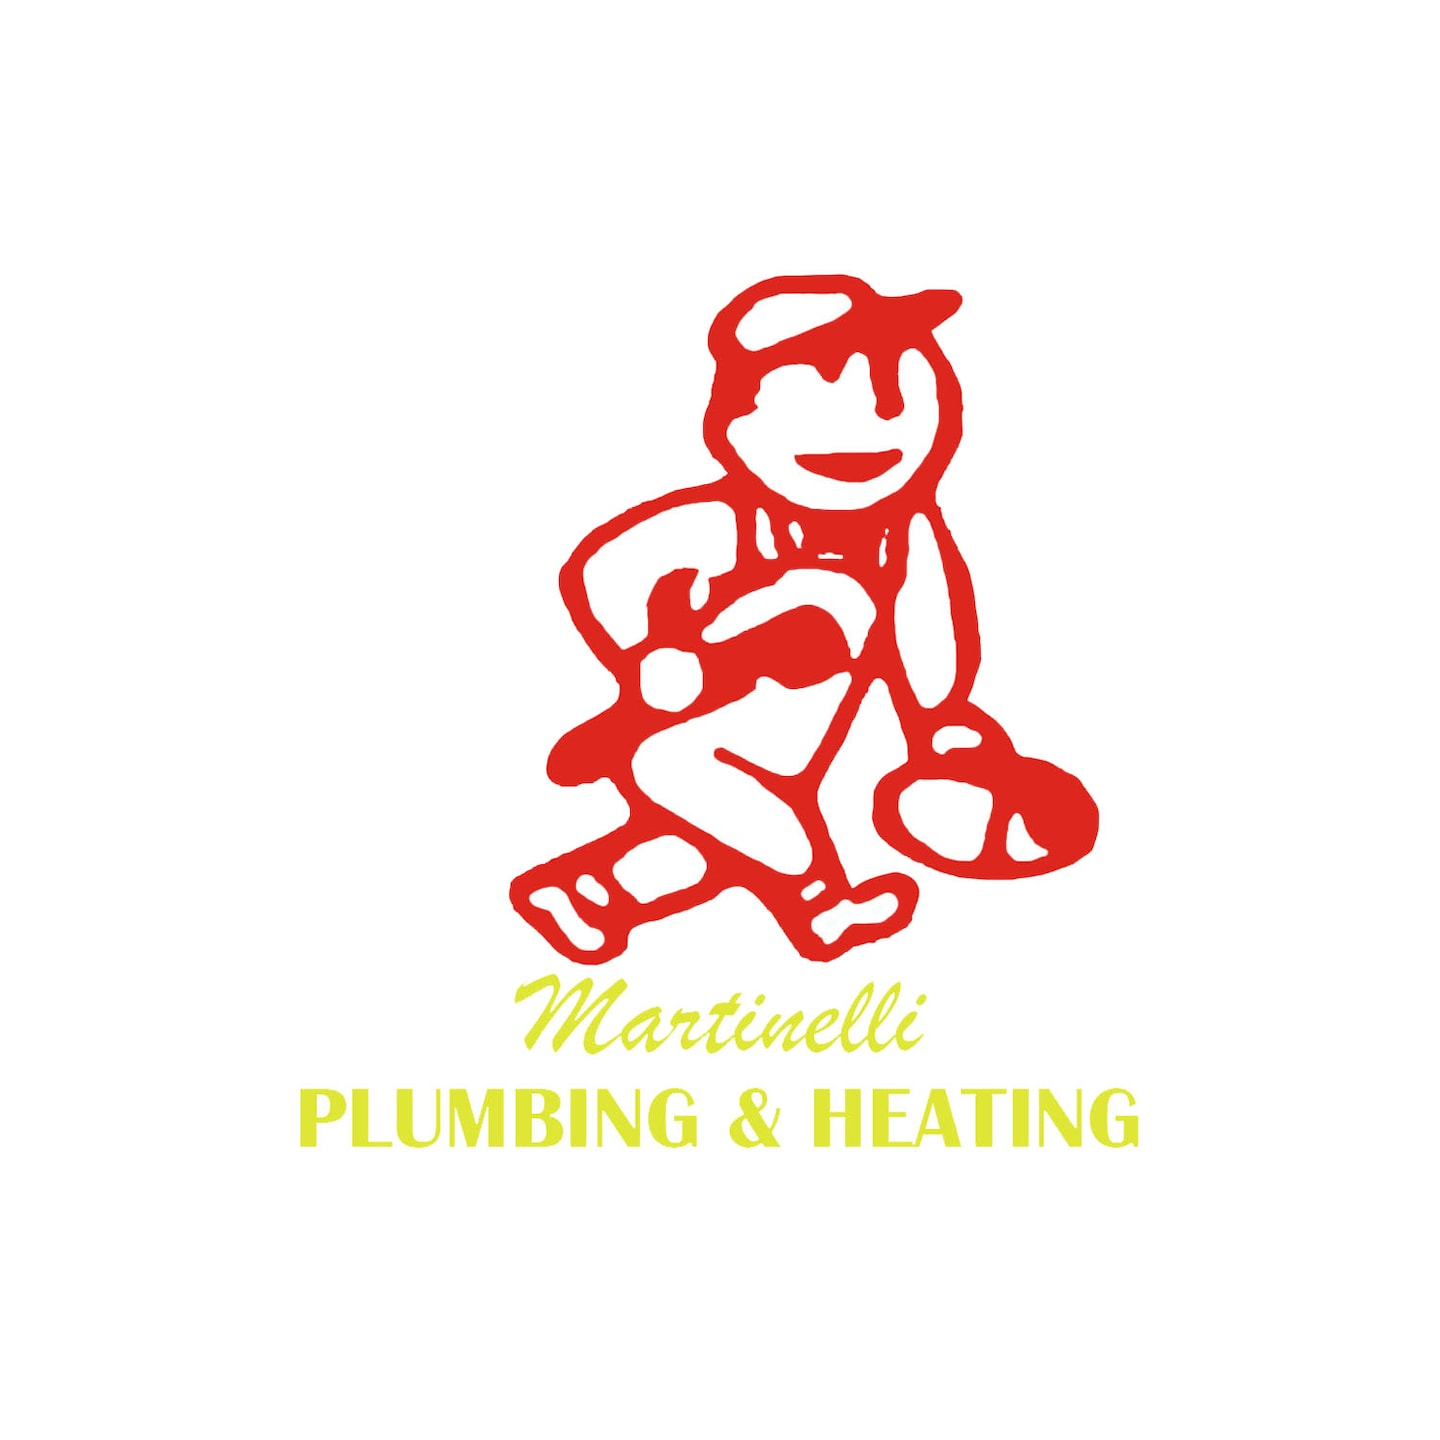 MARTINELLI PLUMBING & HEATING